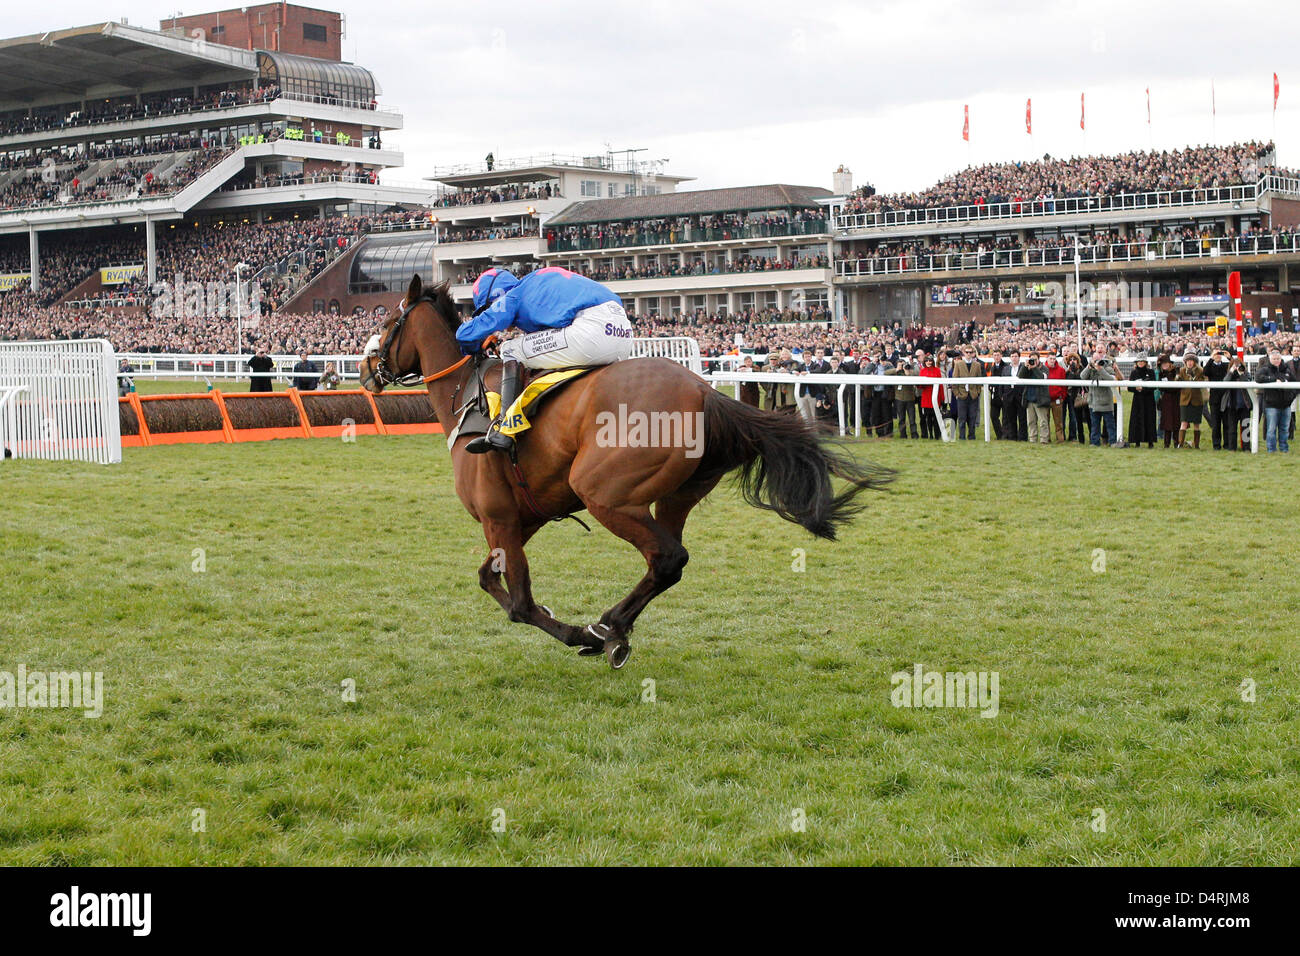 14.03.2013 - Cheltenham; Cue Card, ridden by Joe Tizzard wins the Ryanair Chase (Registered As The Festival Trophy - Stock Image